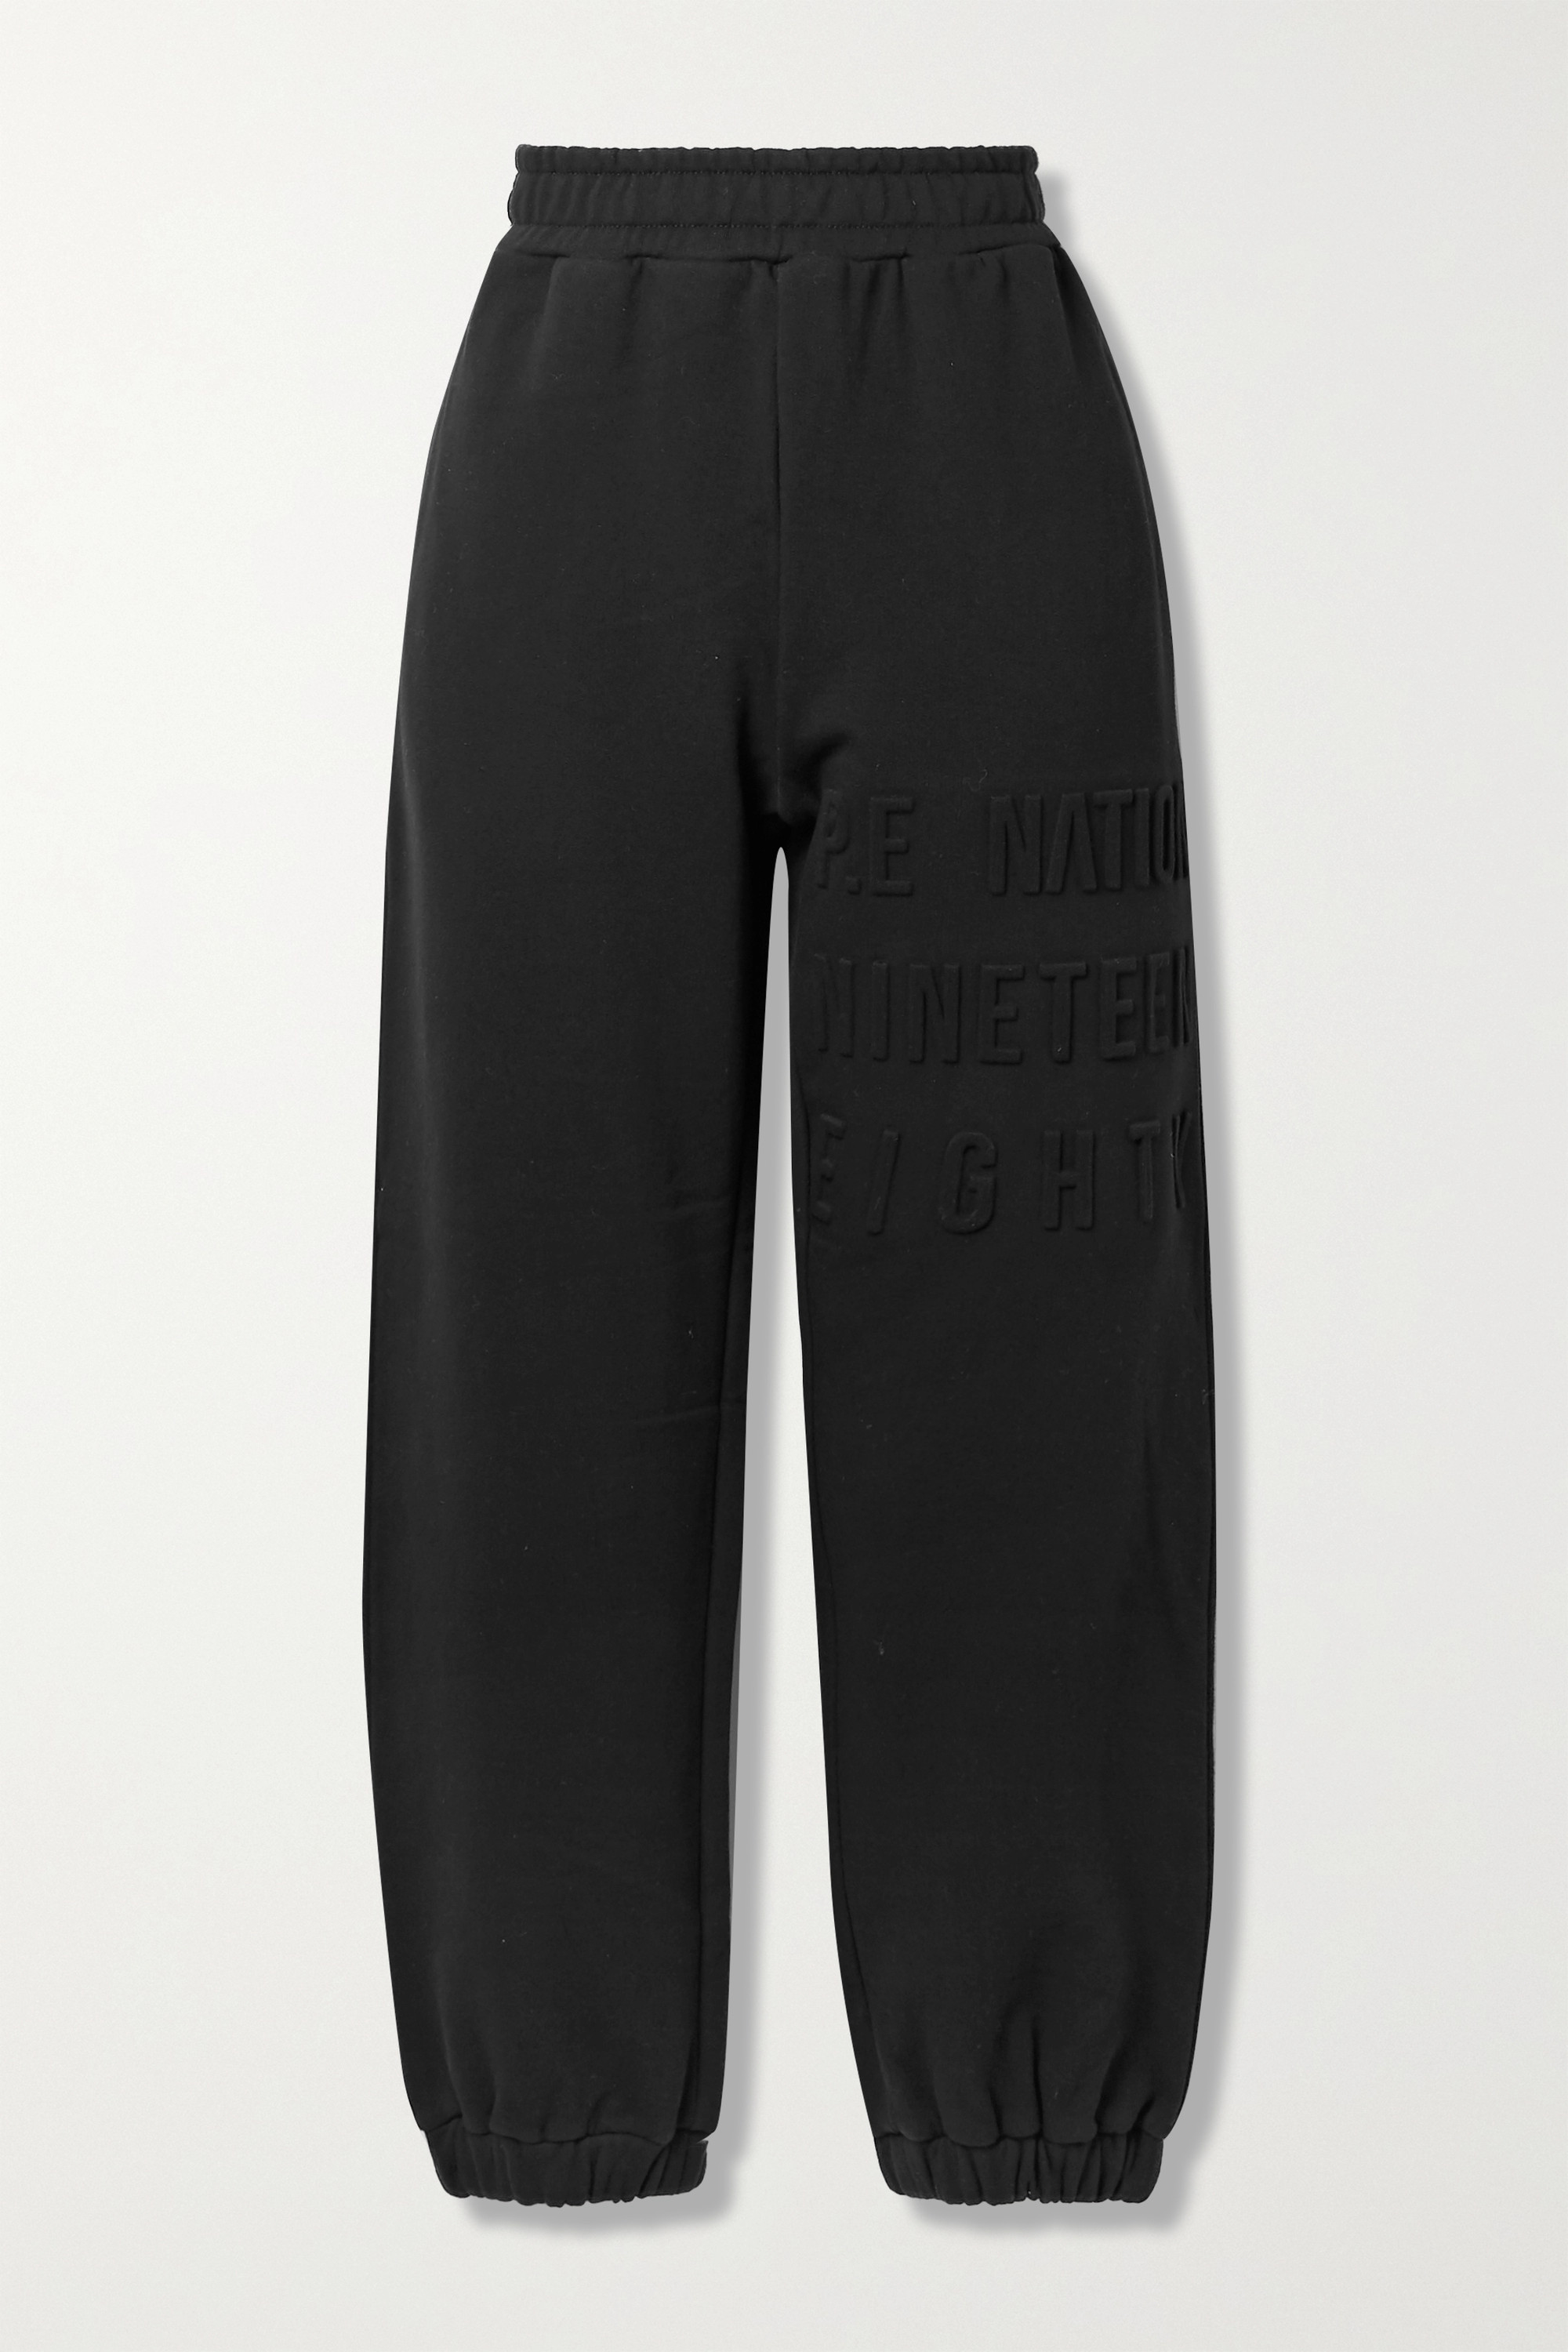 P.E NATION - Power Play embossed stretch organic cotton-jersey track pants